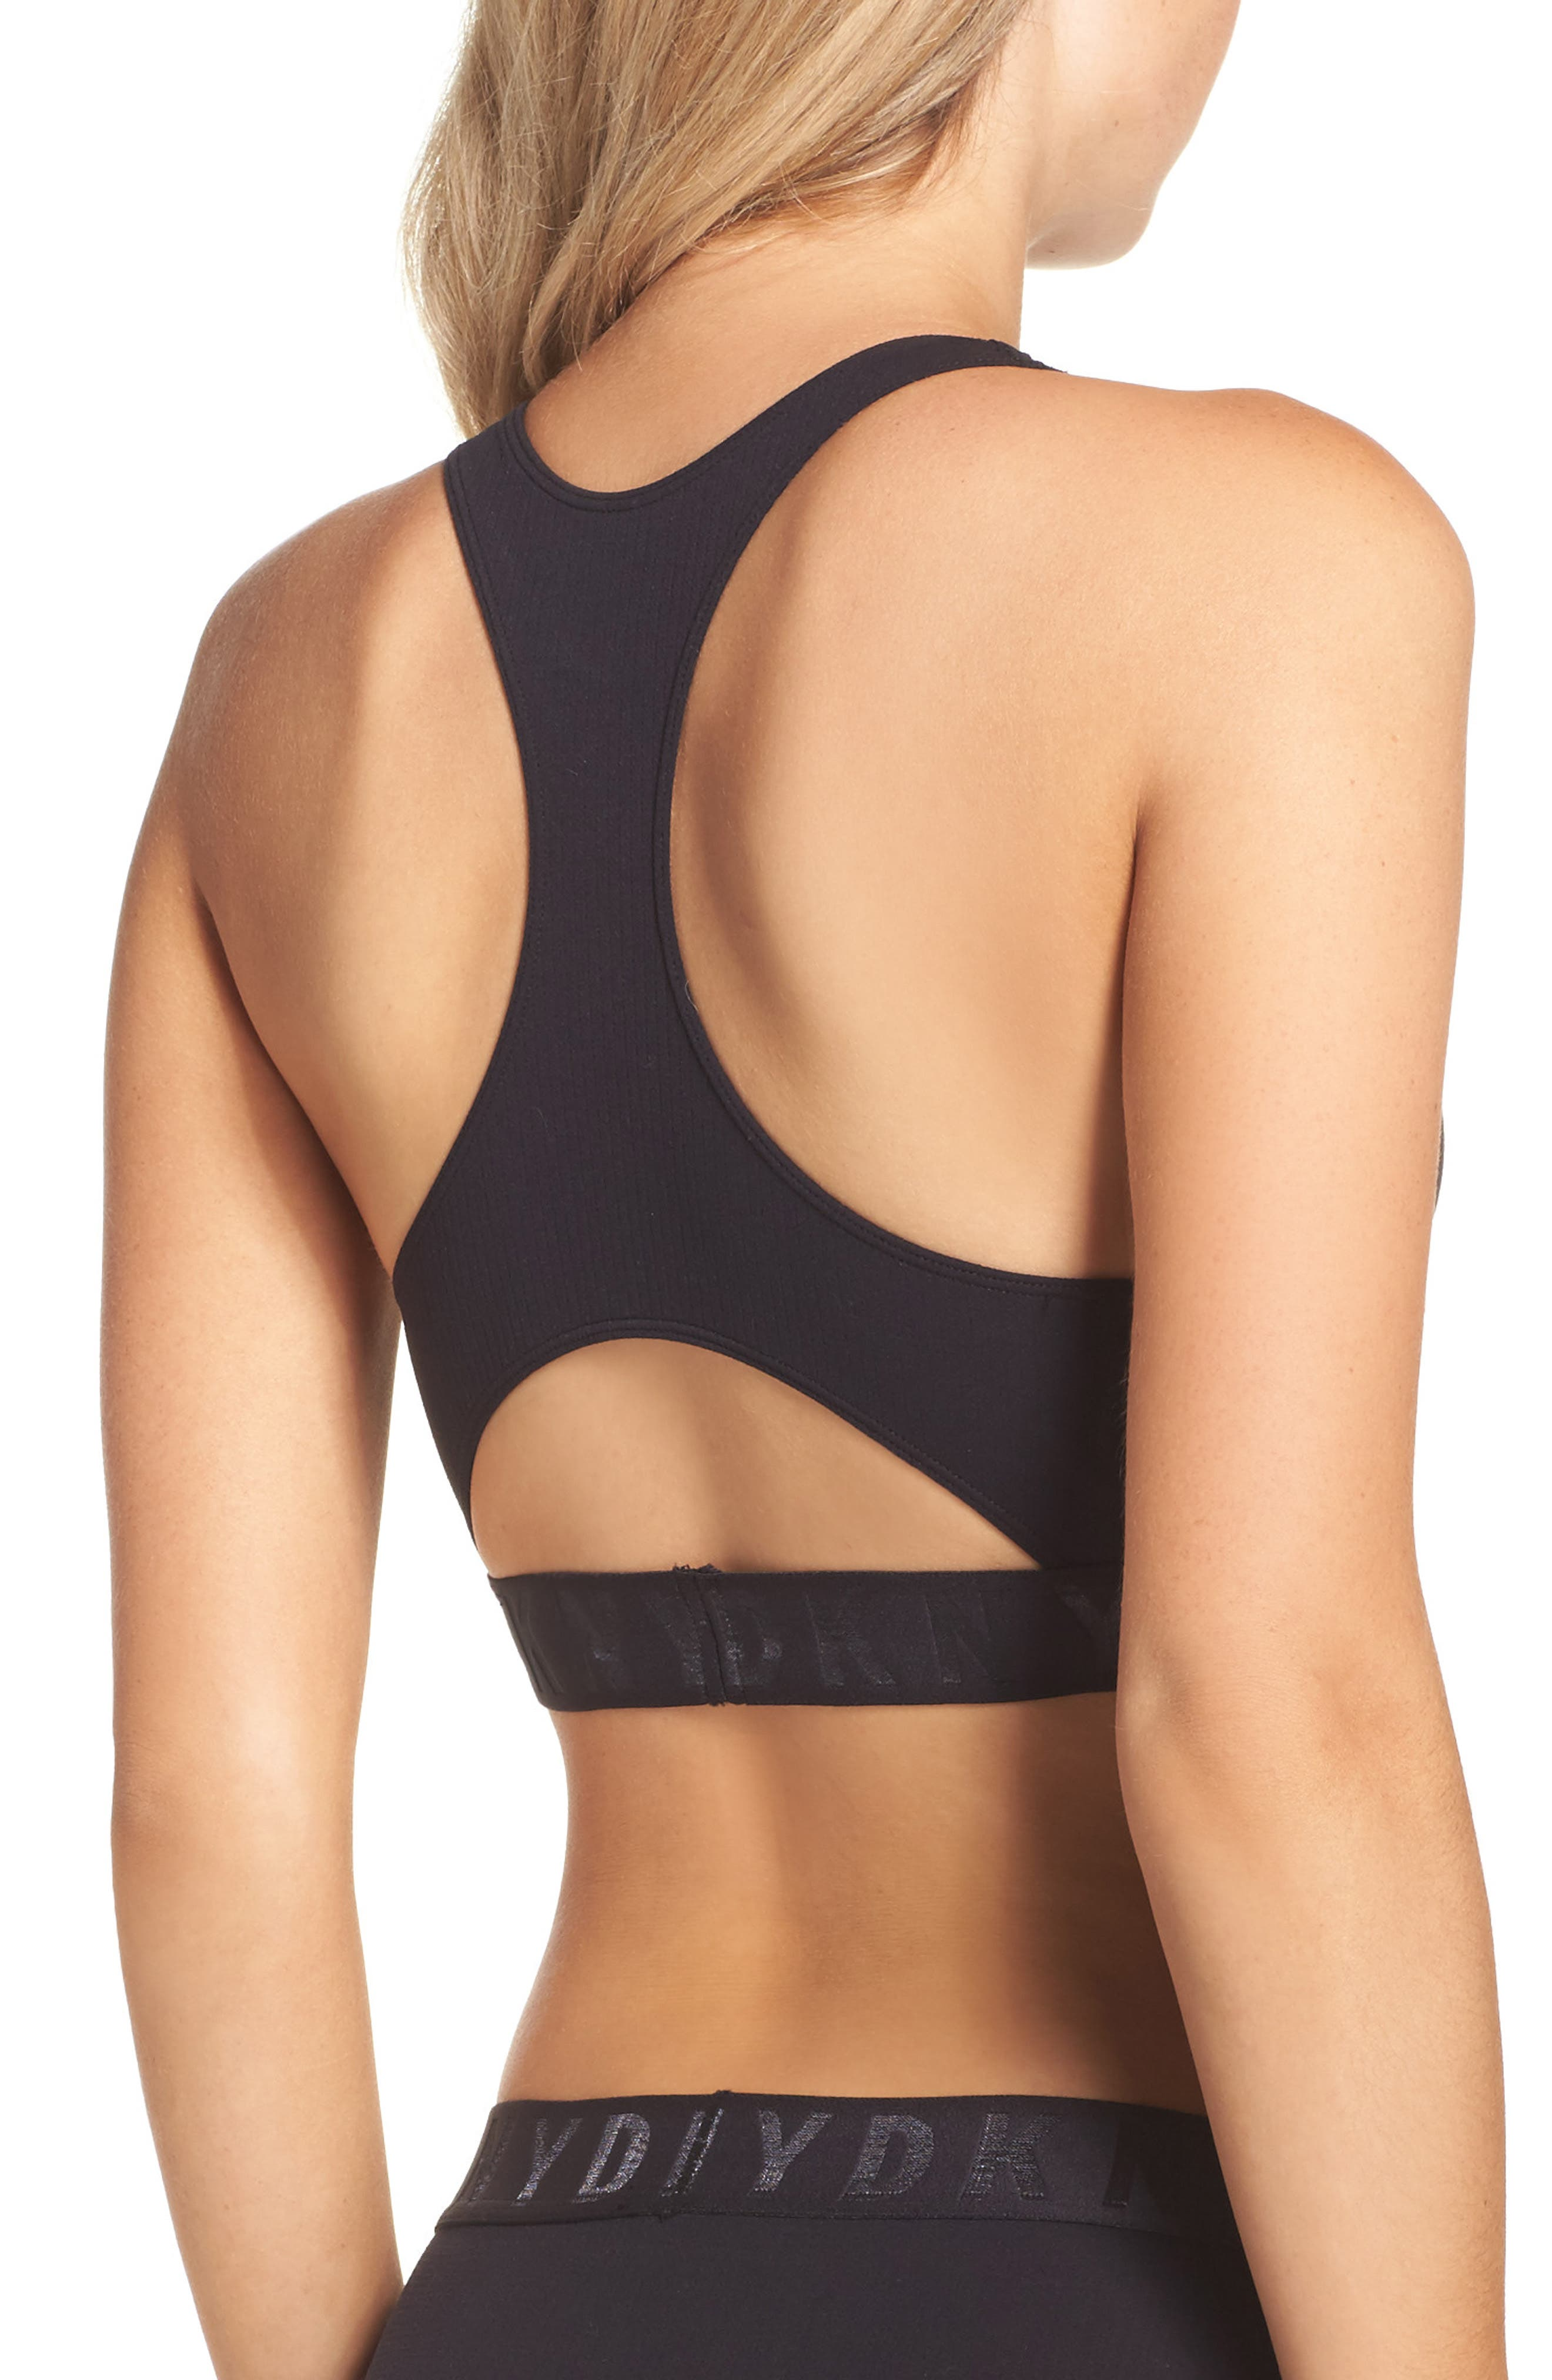 LiteWear Seamless Bralette,                             Alternate thumbnail 7, color,